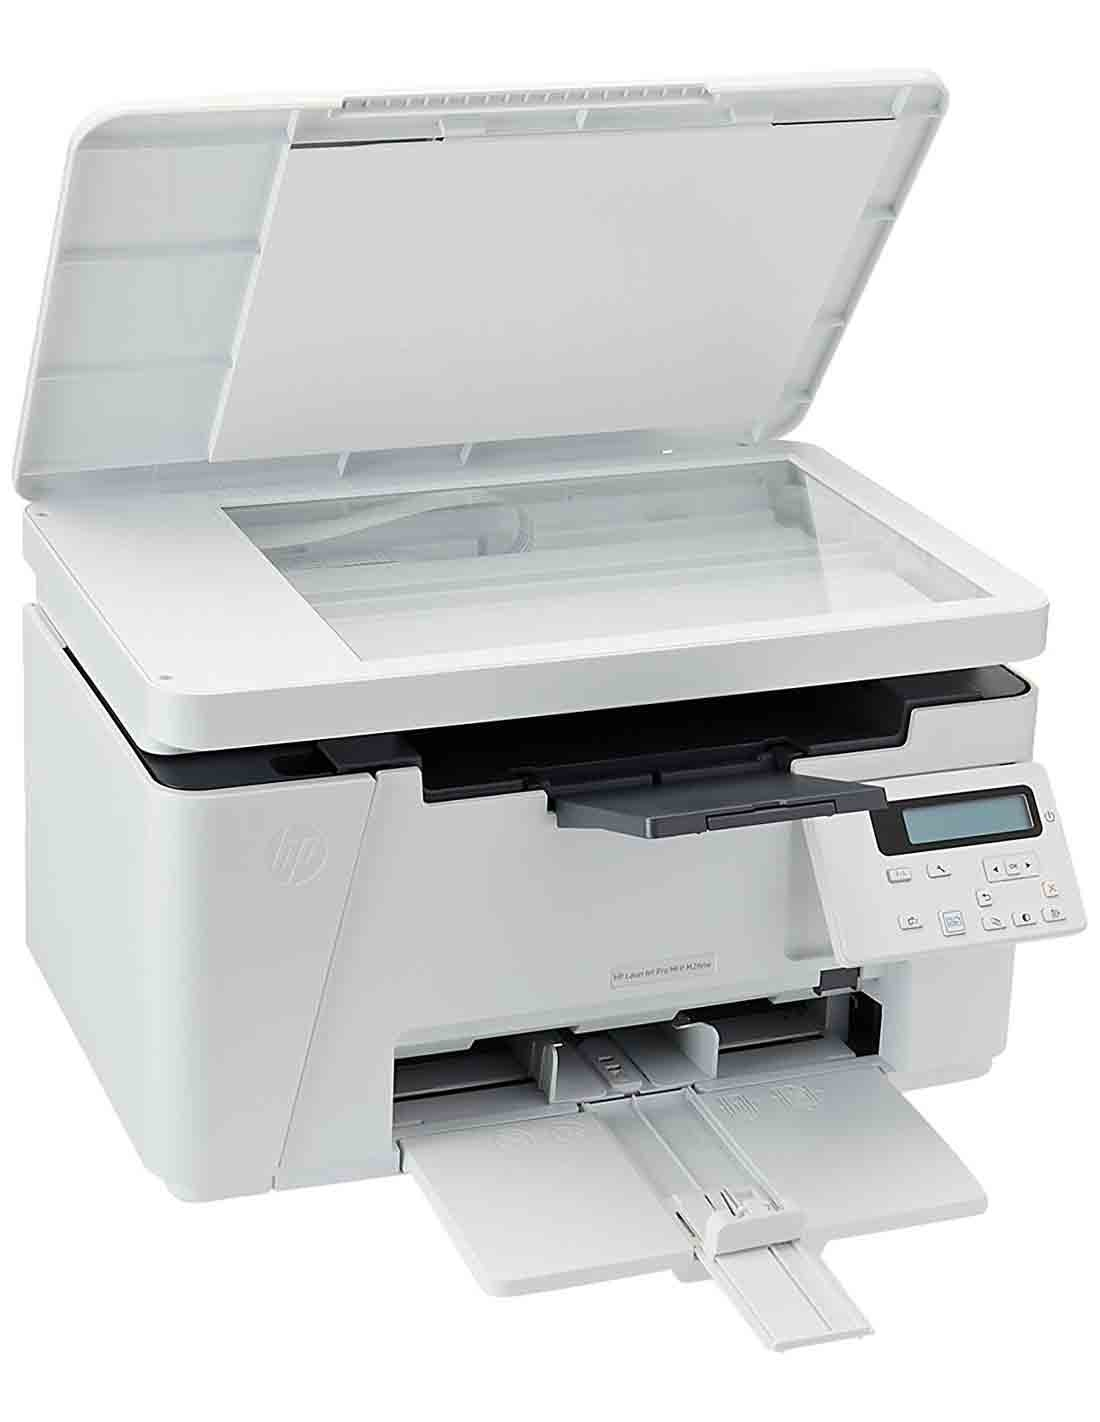 HP LaserJet Pro MFP M26nw T0L50A white at a cheap price and free delivery in Dubai UAE